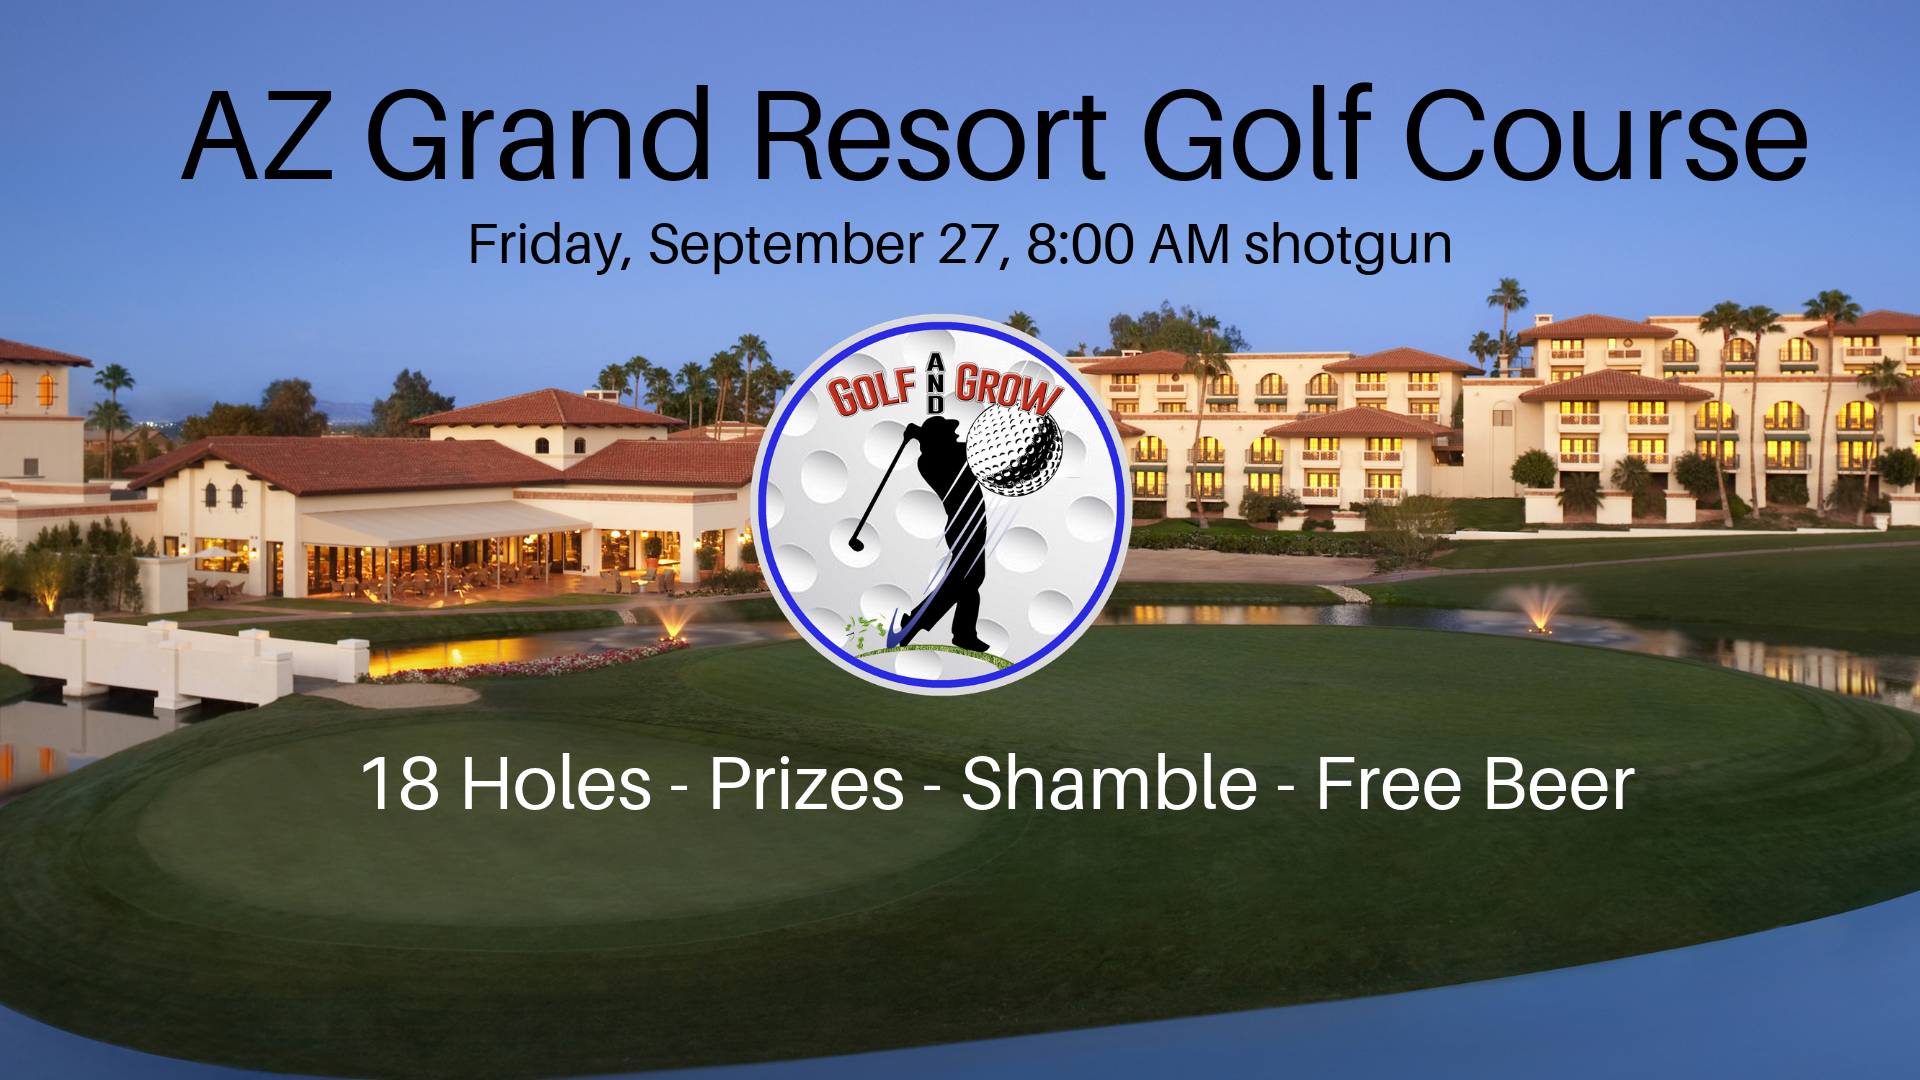 golf and grow tournament at the az grand resort golf course is one of the best events of the year